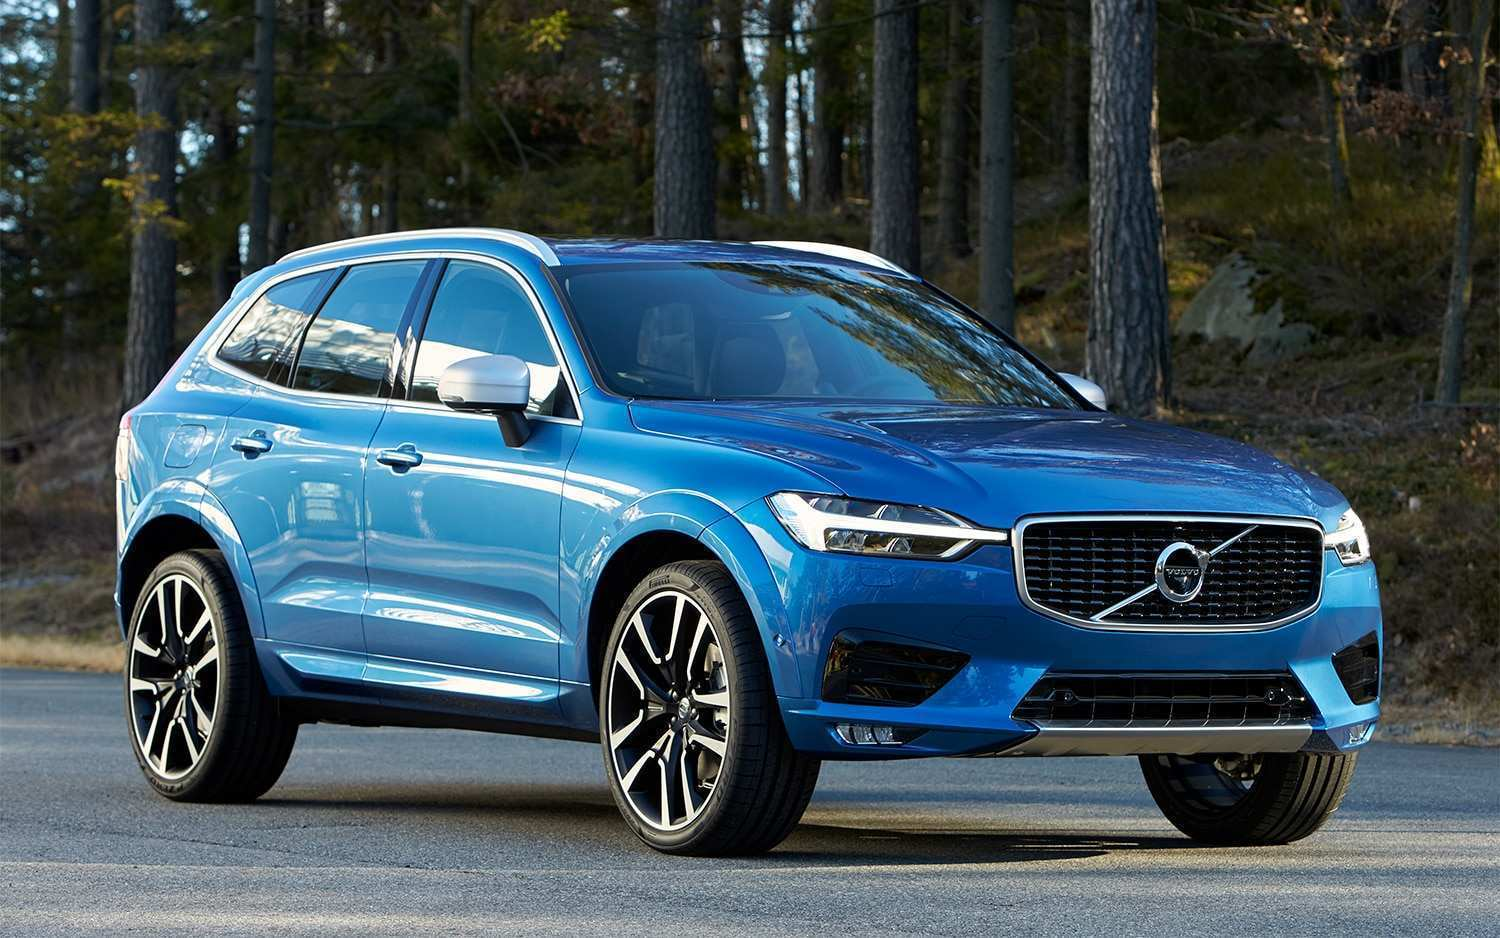 41 New Volvo 2019 Electric Car Release Date And Concept